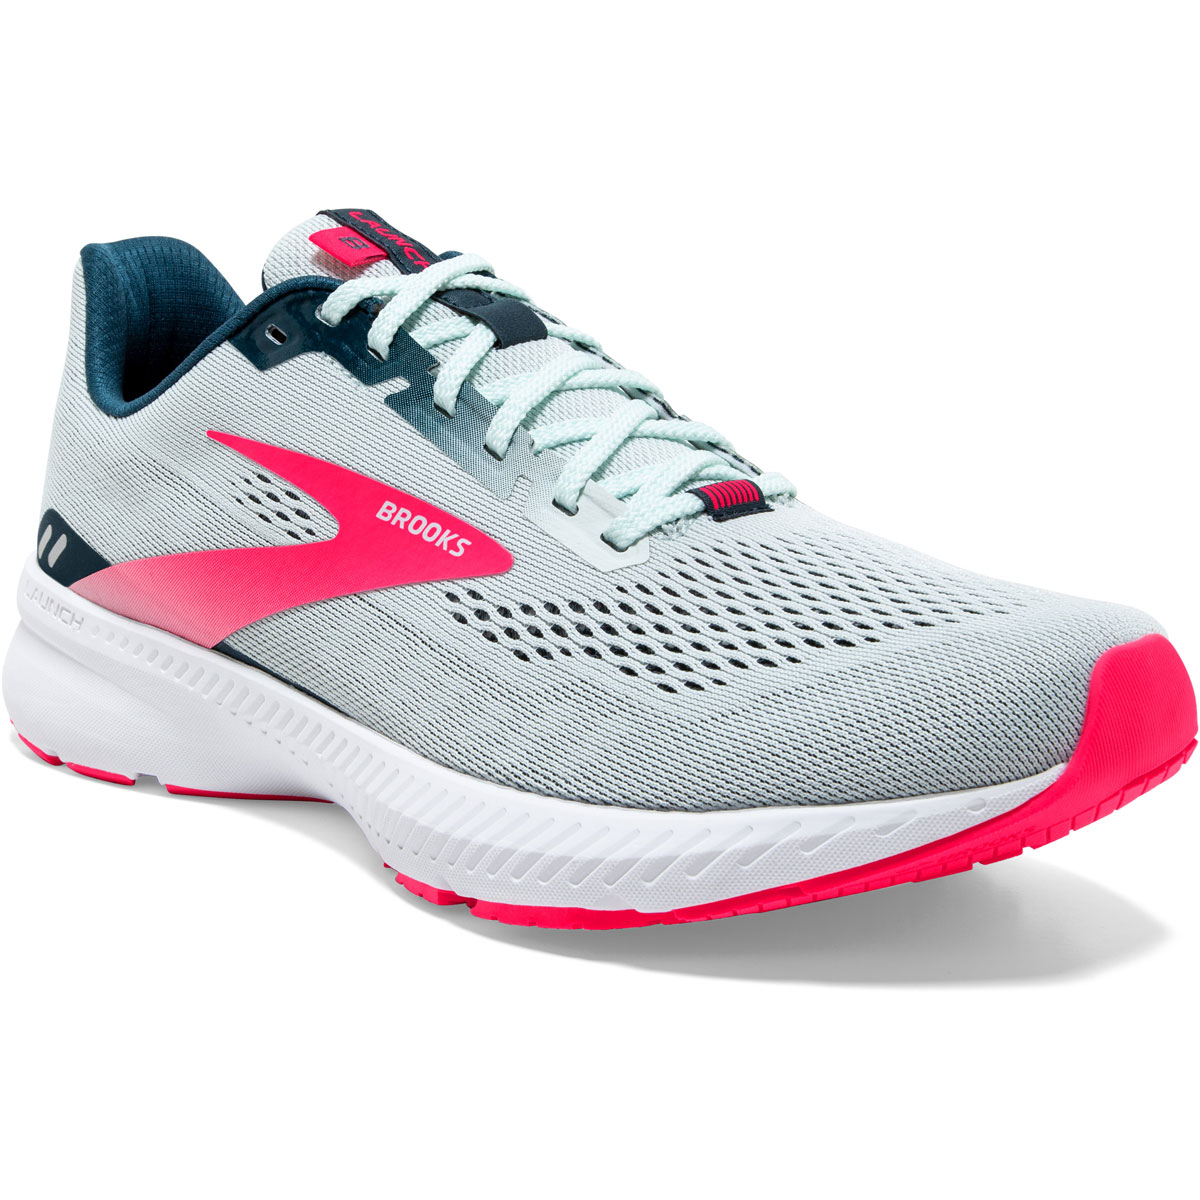 Women's Brooks Launch 8 Running Shoe - Color: Ice Flow/Navy/Pink - Size: 5 - Width: Regular, Ice Flow/Navy/Pink, large, image 6